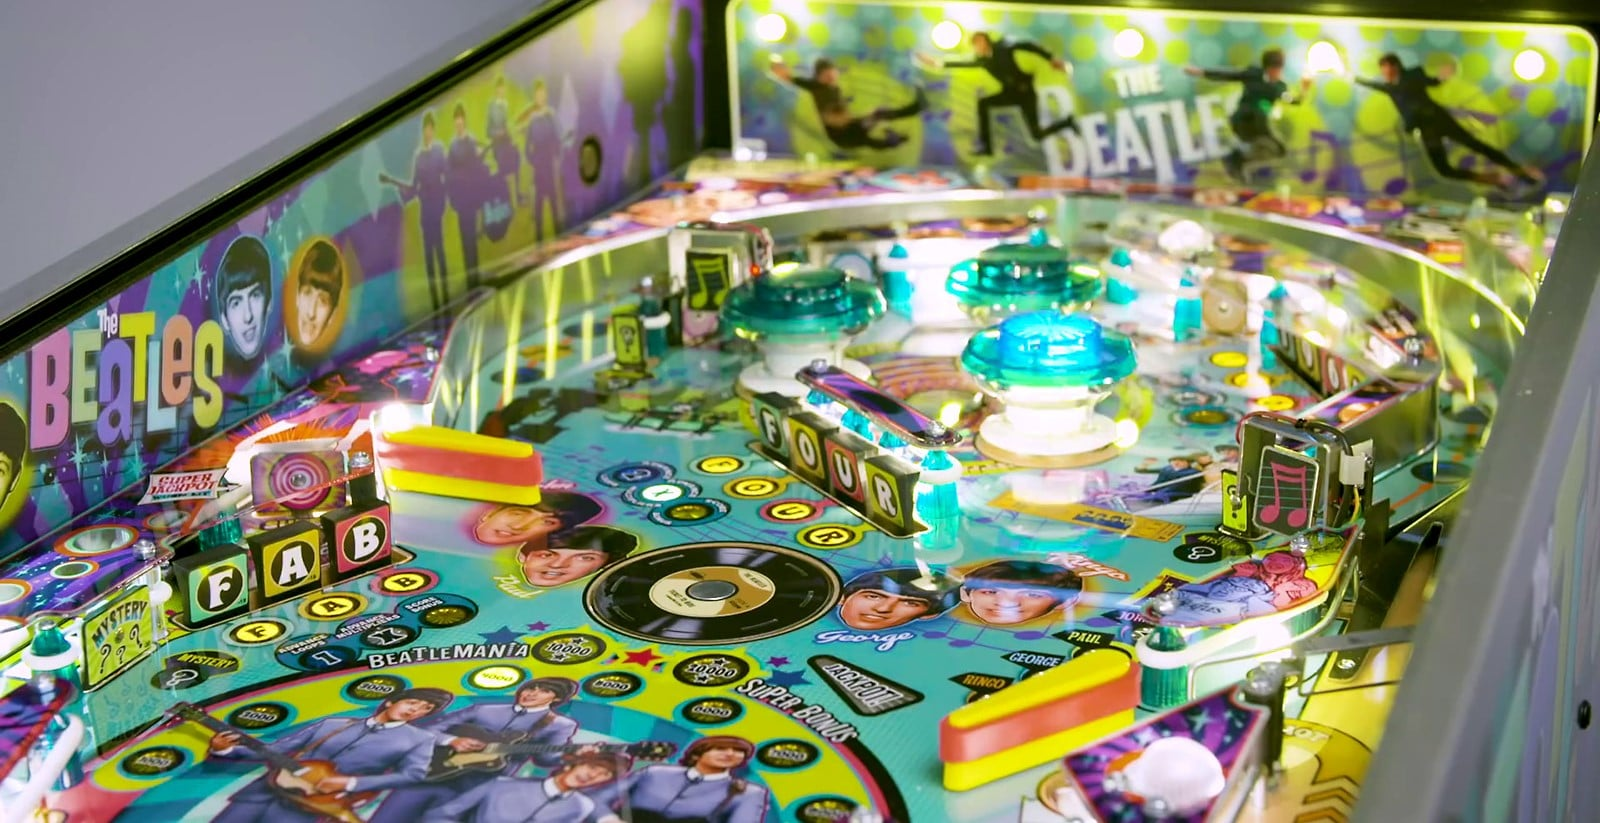 Best Pinball Machines Reviewed in Detail